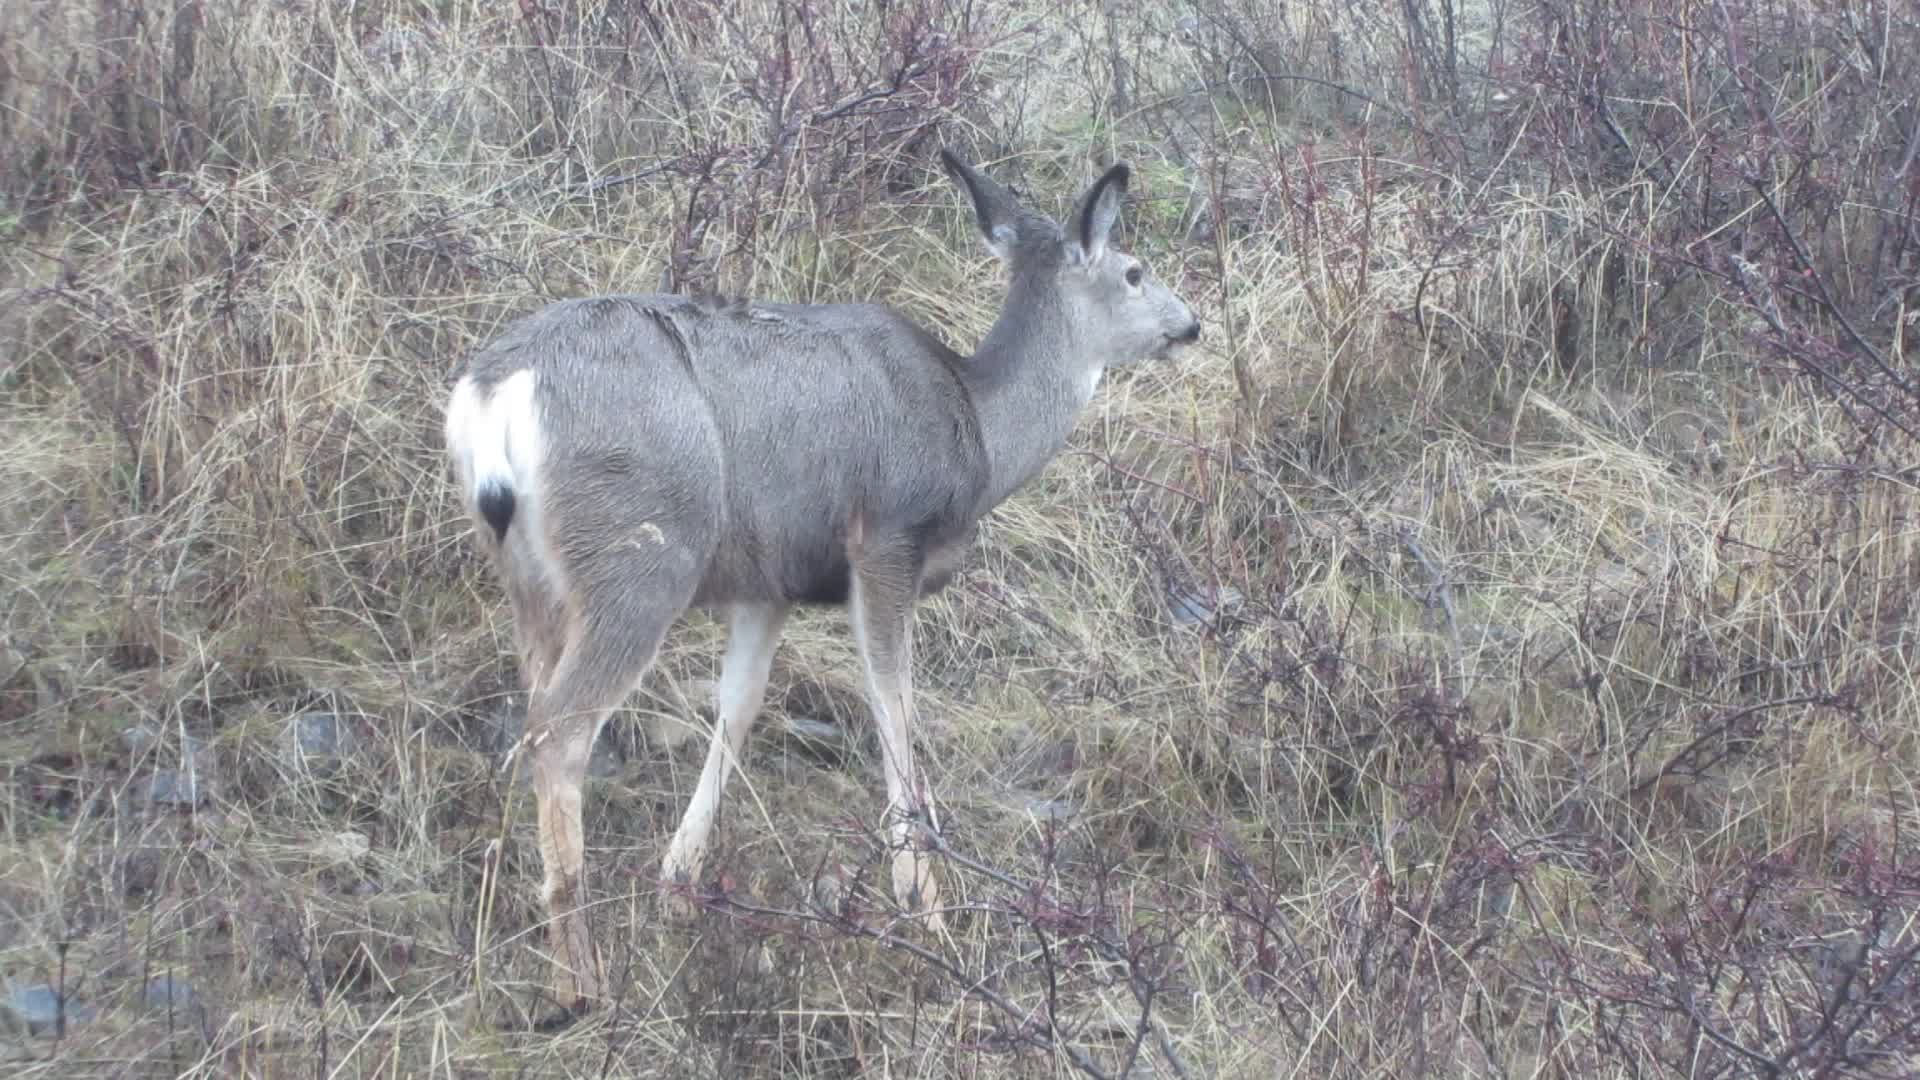 File How to Write a Cover Letter additionally File Mule Deer foraging at Okanagan Mountain Provincial Park likewise File Exciting New Improvements to Phabricator likewise Giant Spider Crab Size furthermore File Leikert  Katja. on original file  webm audio video vp8 vorbis